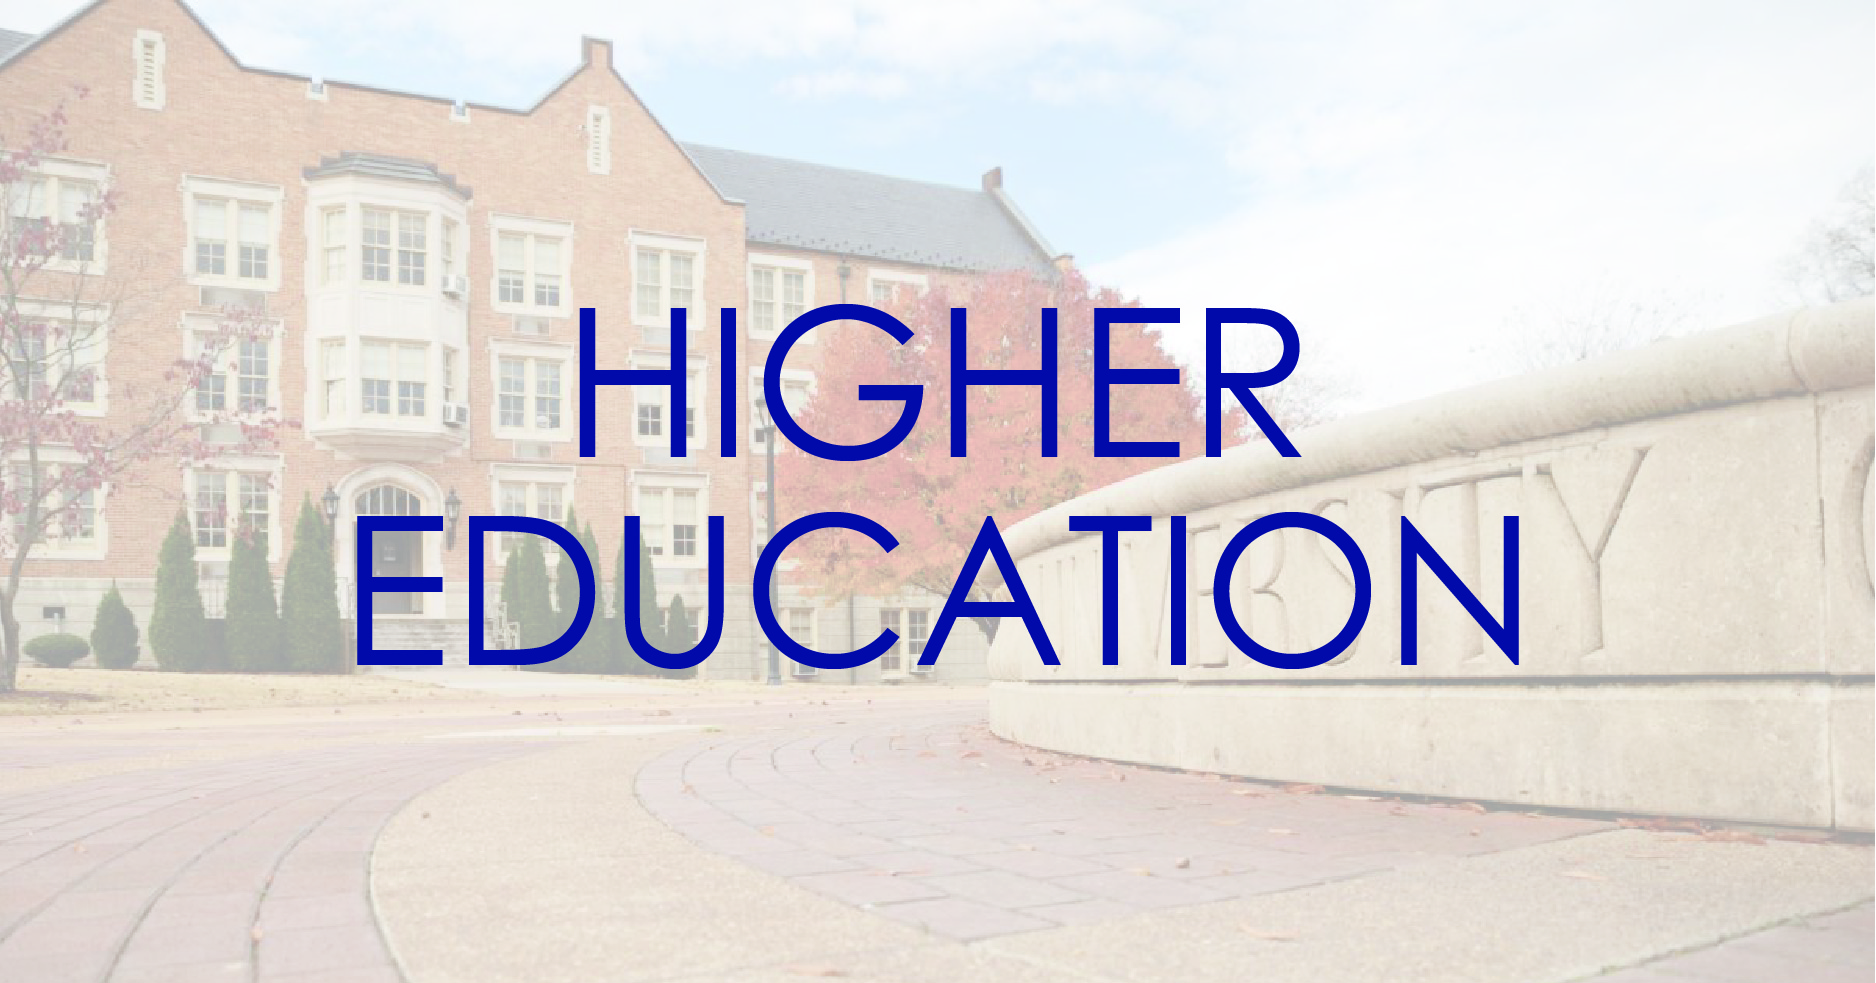 Higher Education - Archived Title (2)-01.jpg